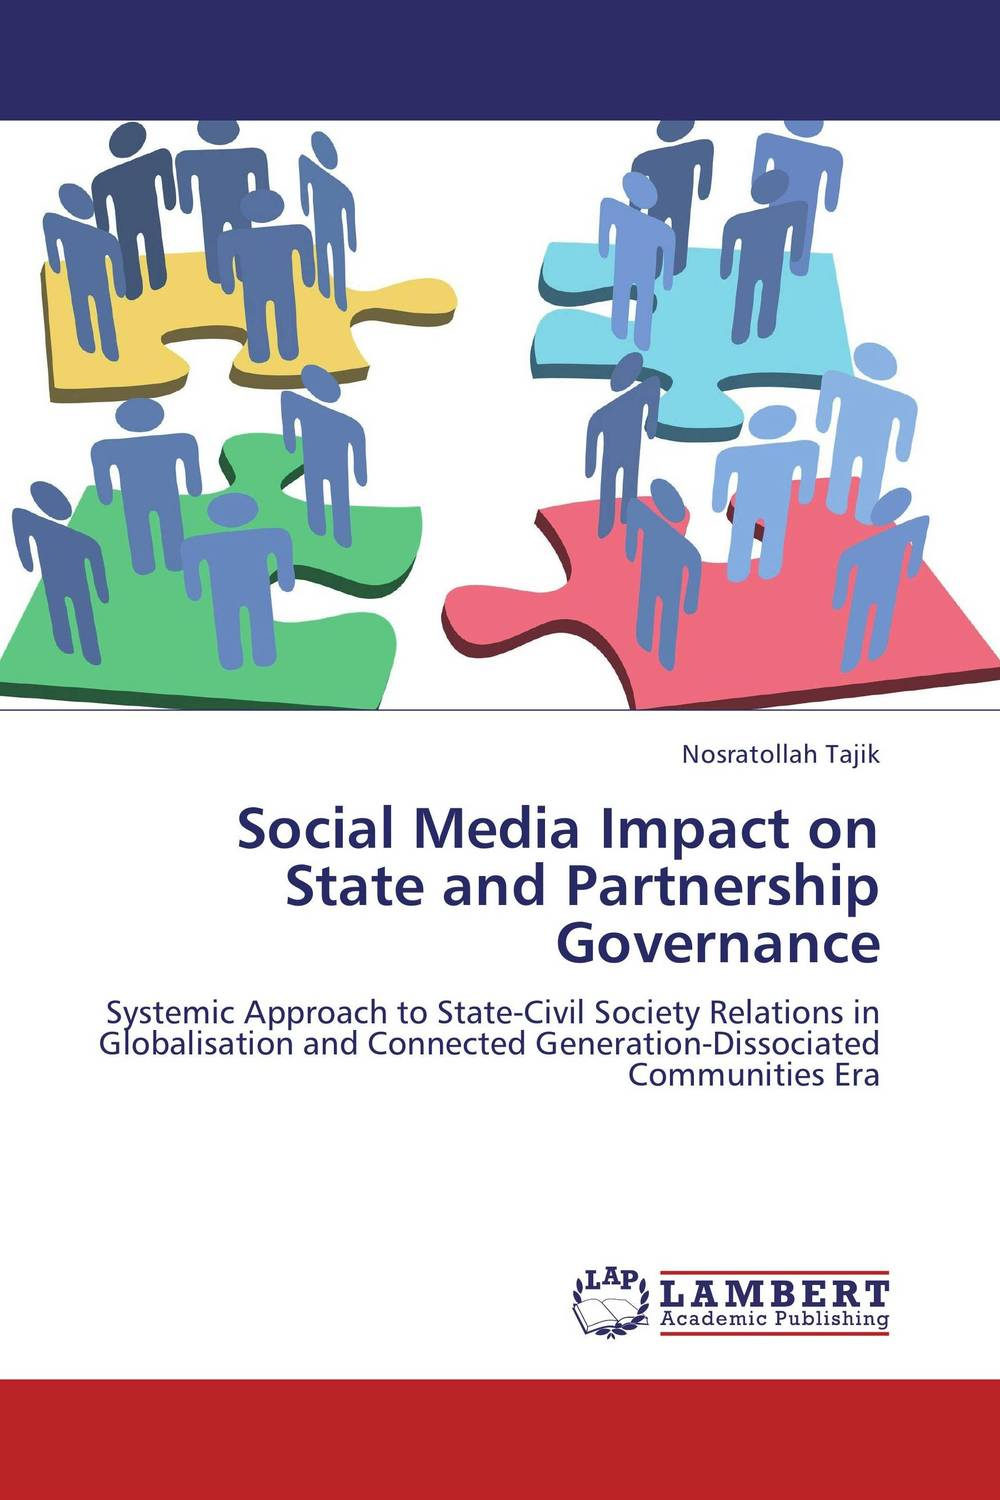 где купить Social Media Impact on State and Partnership Governance по лучшей цене